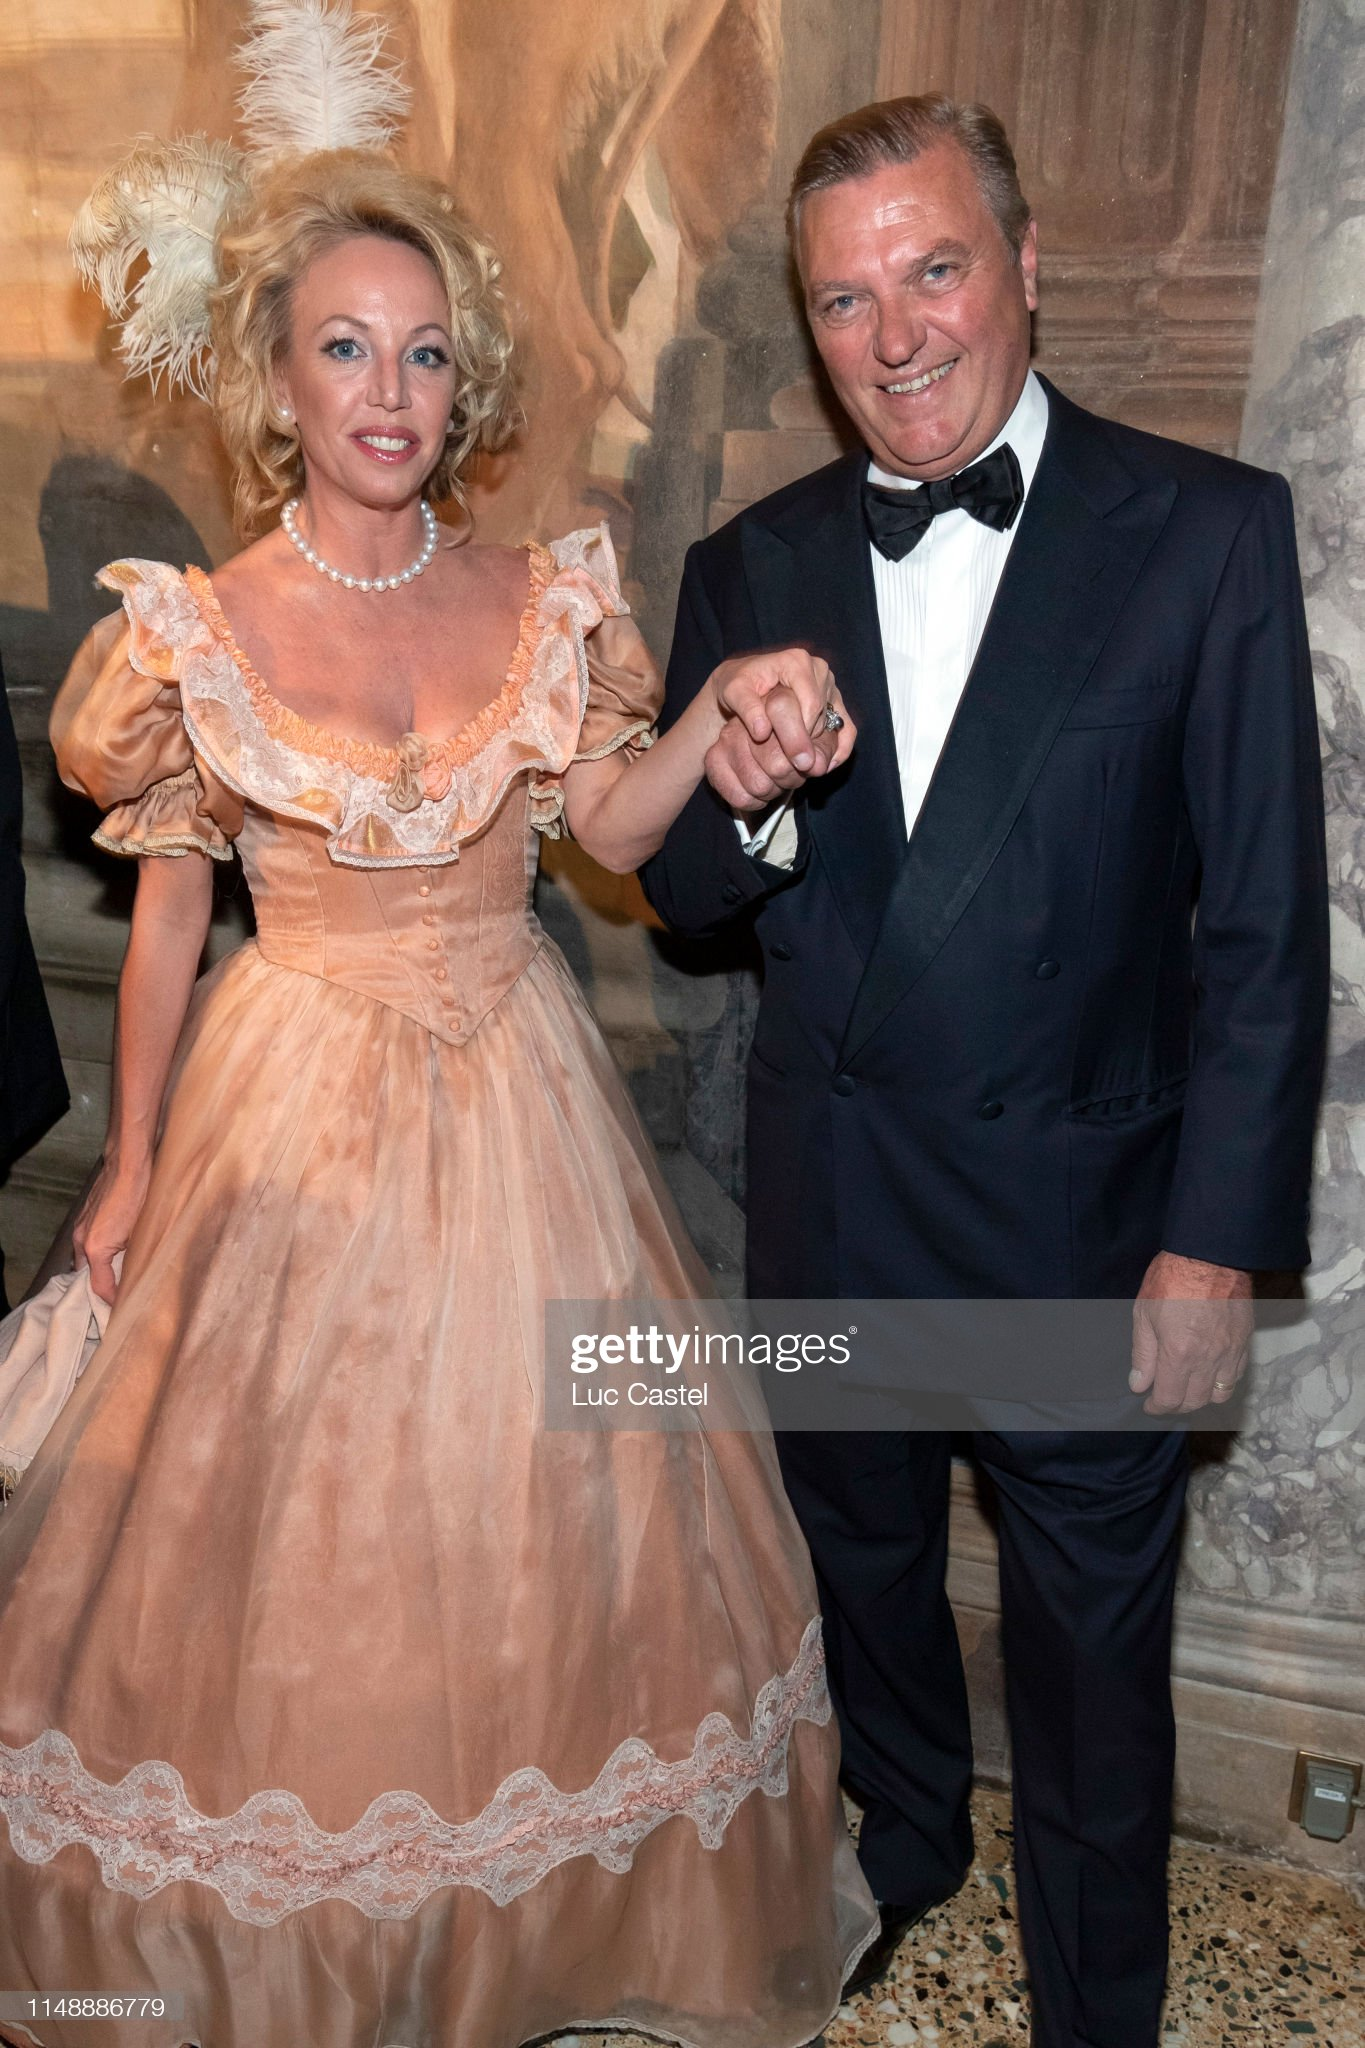 https://media.gettyimages.com/photos/princess-camilla-of-bourbon-sicile-and-her-husband-prince-charles-of-picture-id1148886779?s=2048x2048